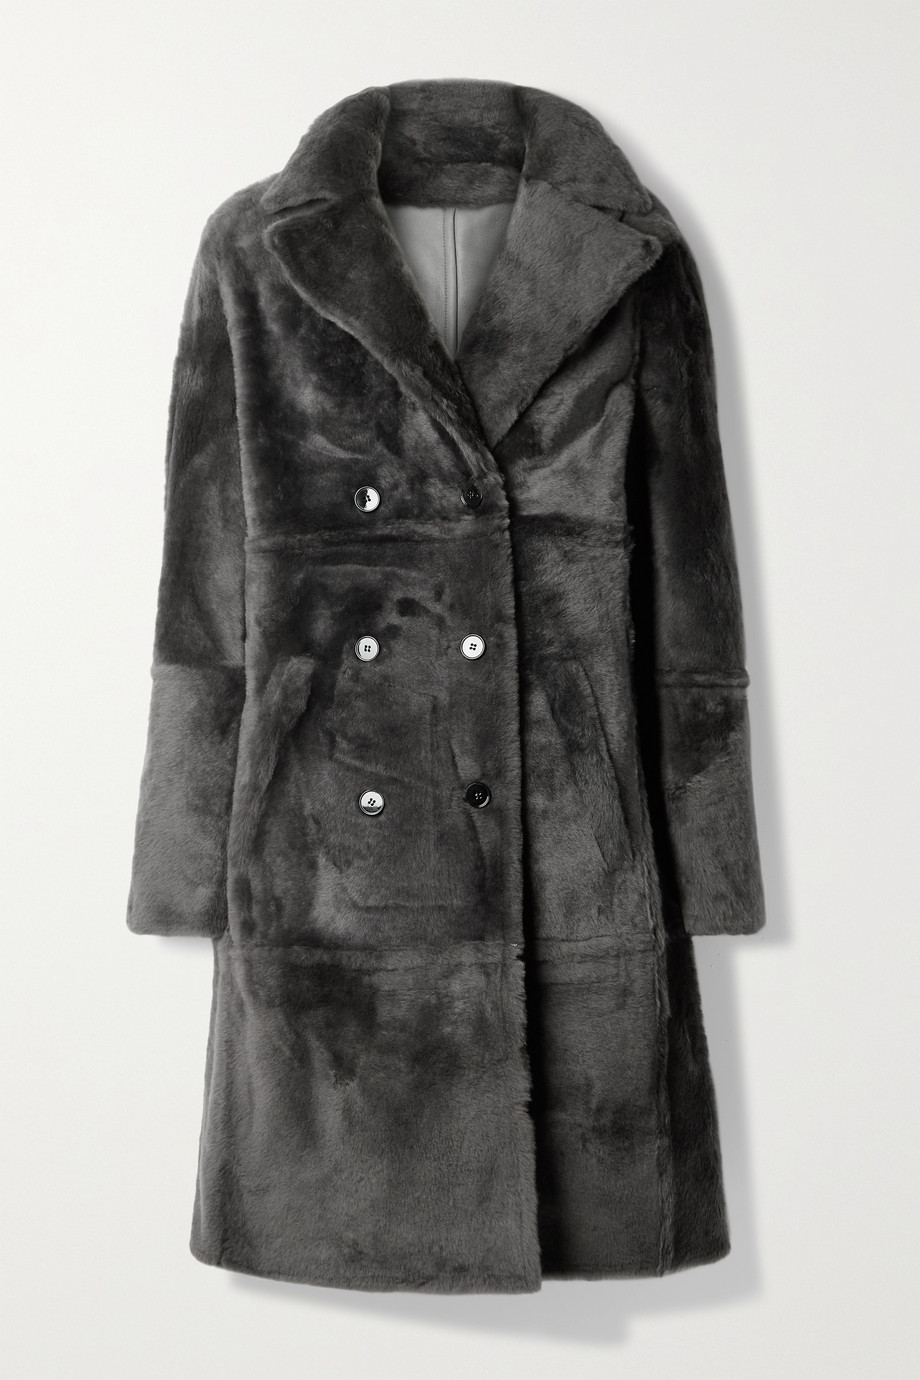 Yves Salomon Lacon double-breasted shearling coat